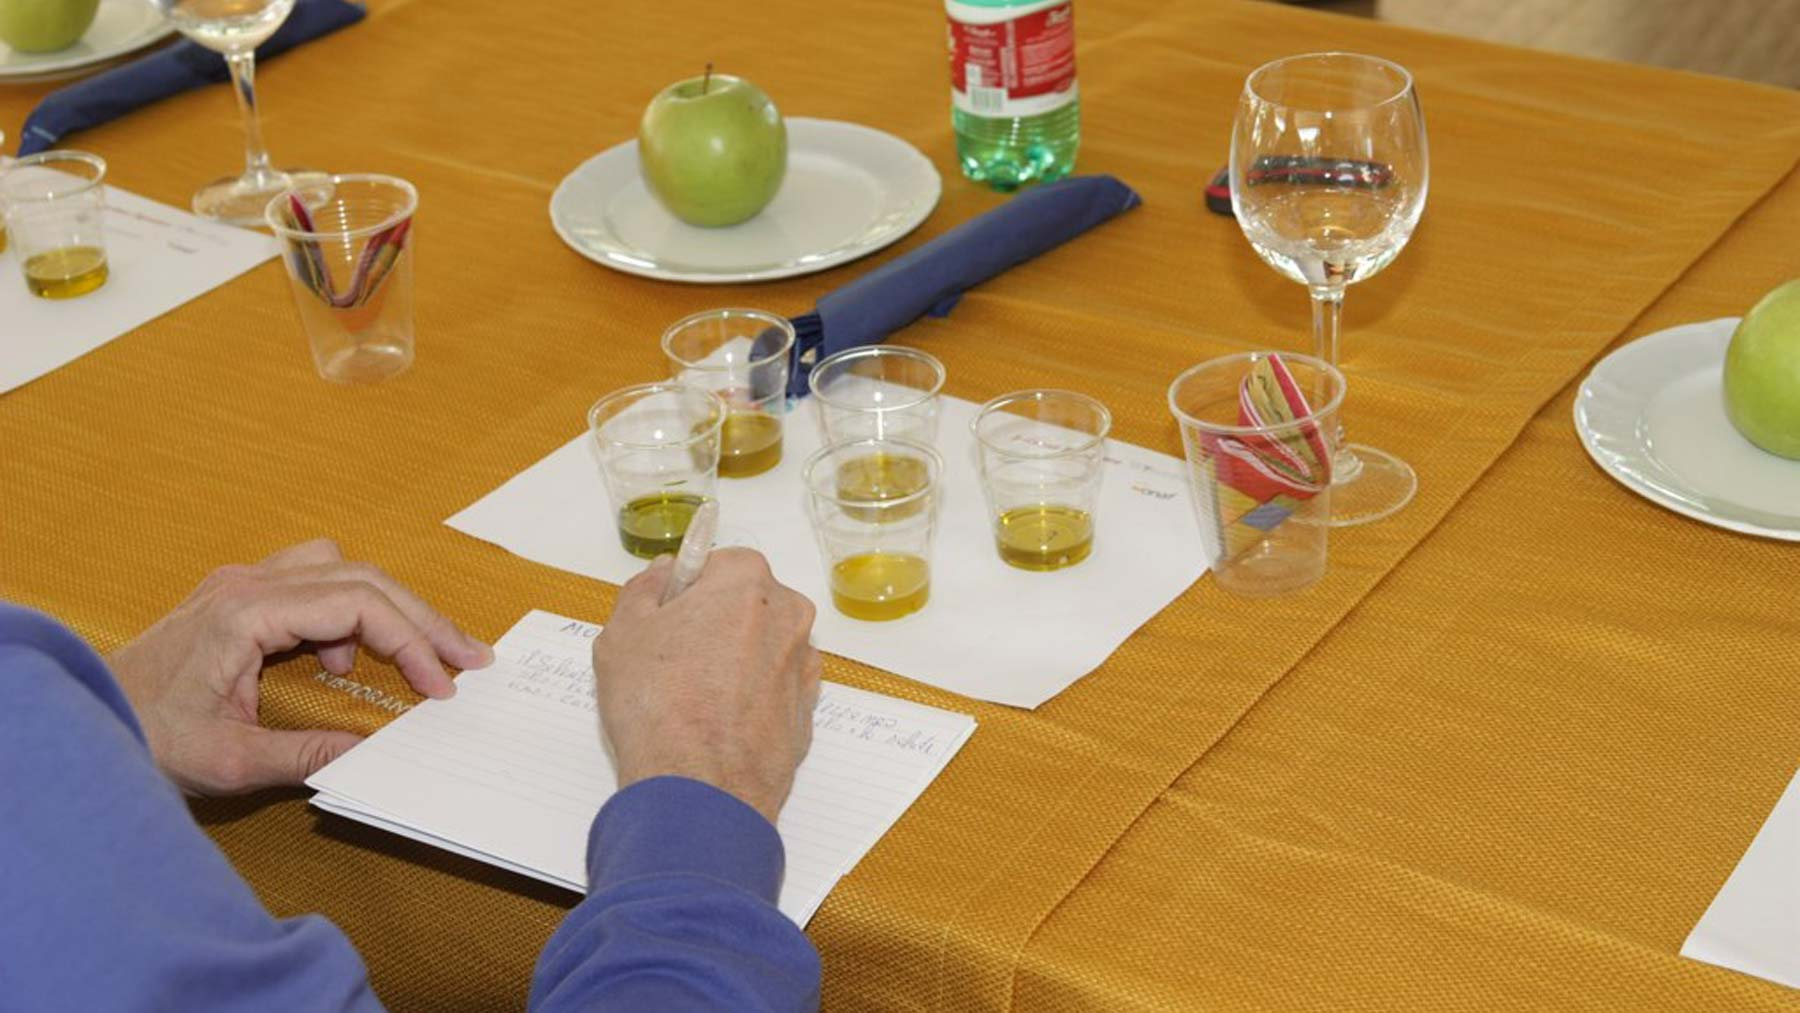 Extra virgin olive oil Terre di Siena tasting course